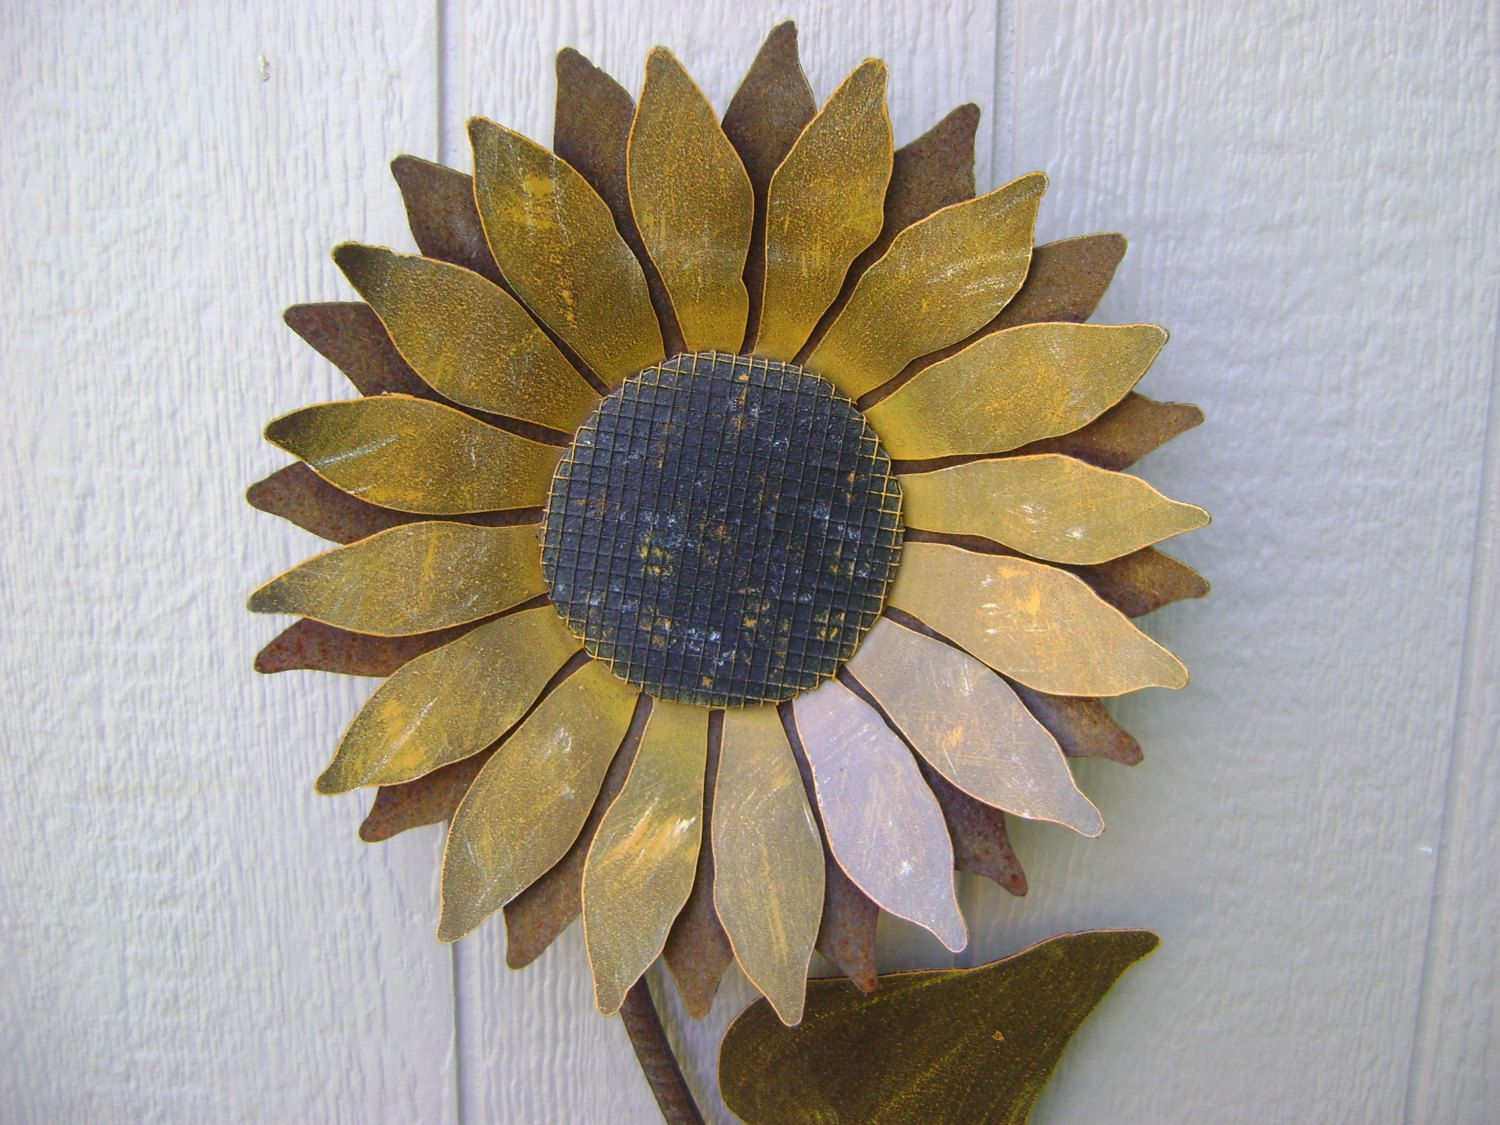 Outdoor Metal Flower Wall Art Awesome Sunflower Metal Garden Art Sunflower Wall Art Rusty Metal. Design Decoration